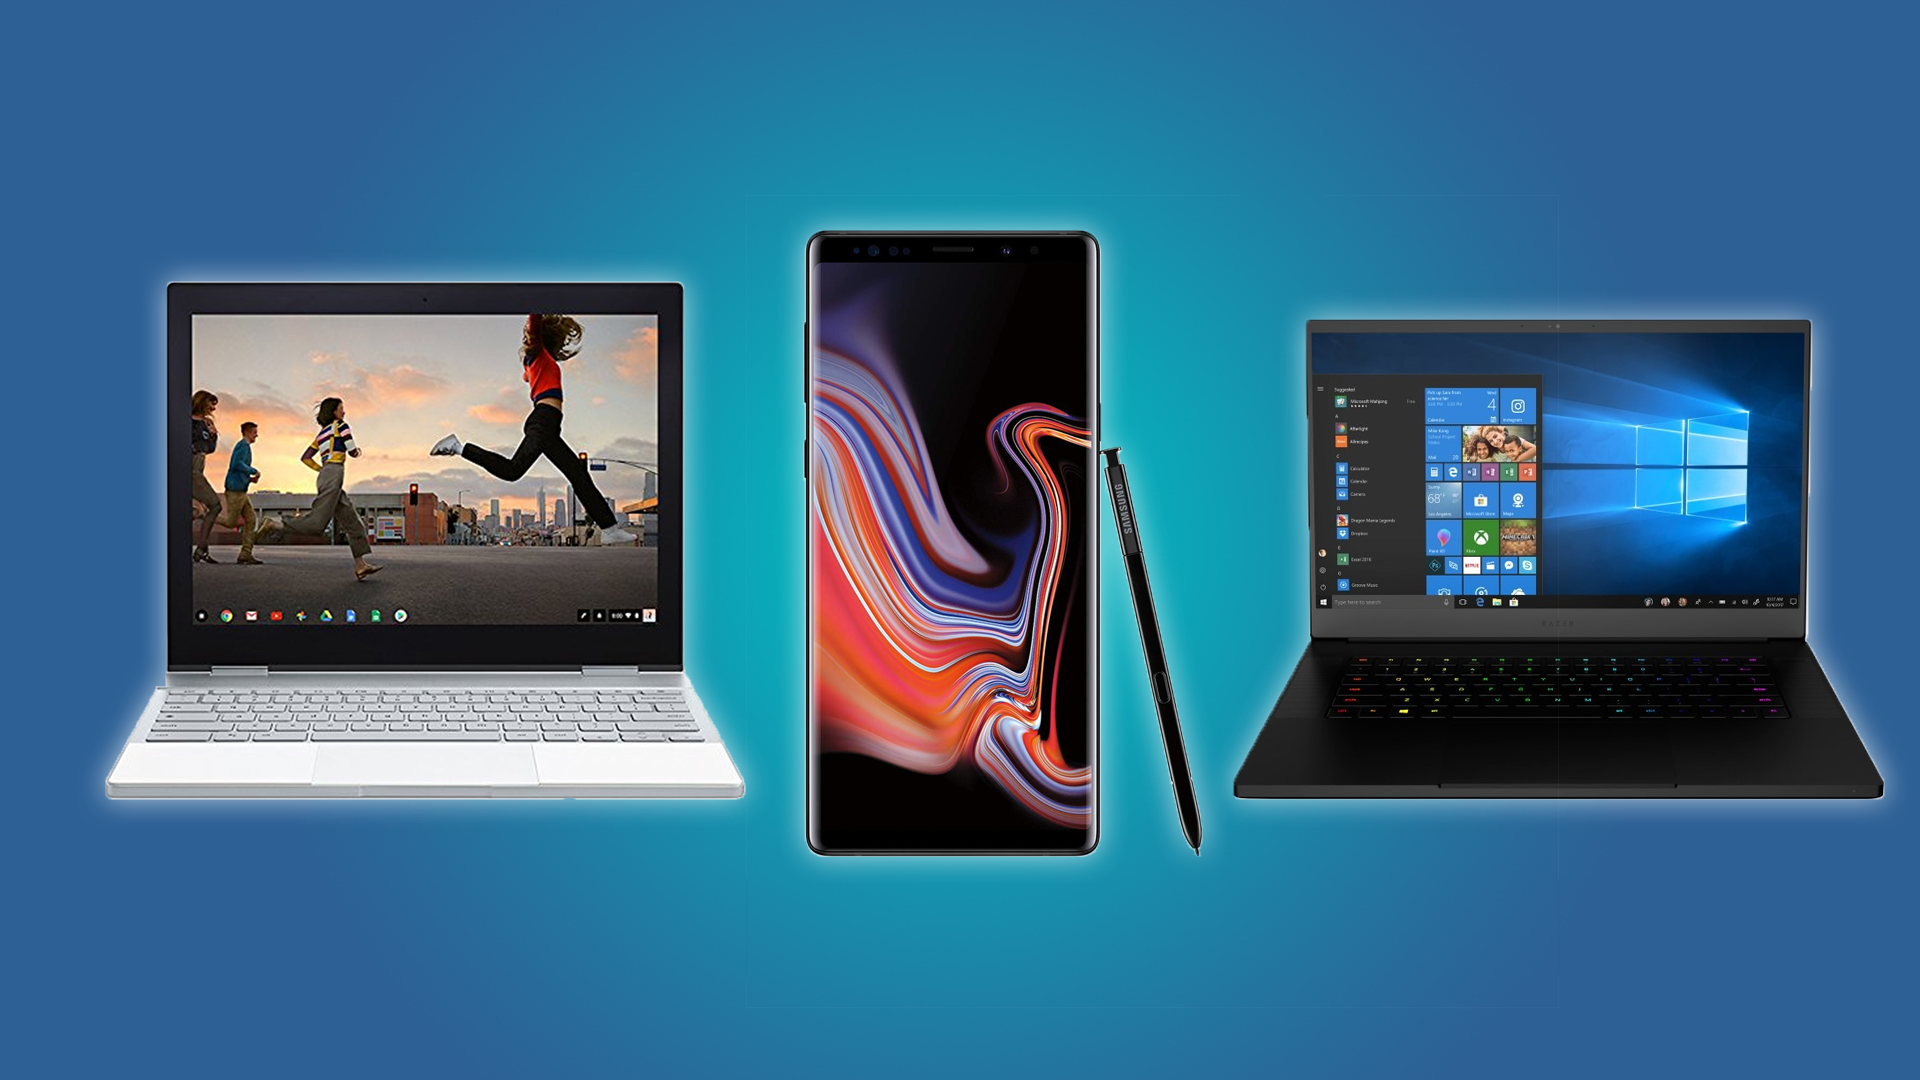 The Google Pixelbook, Galaxy Note 9 and the Razer Blade